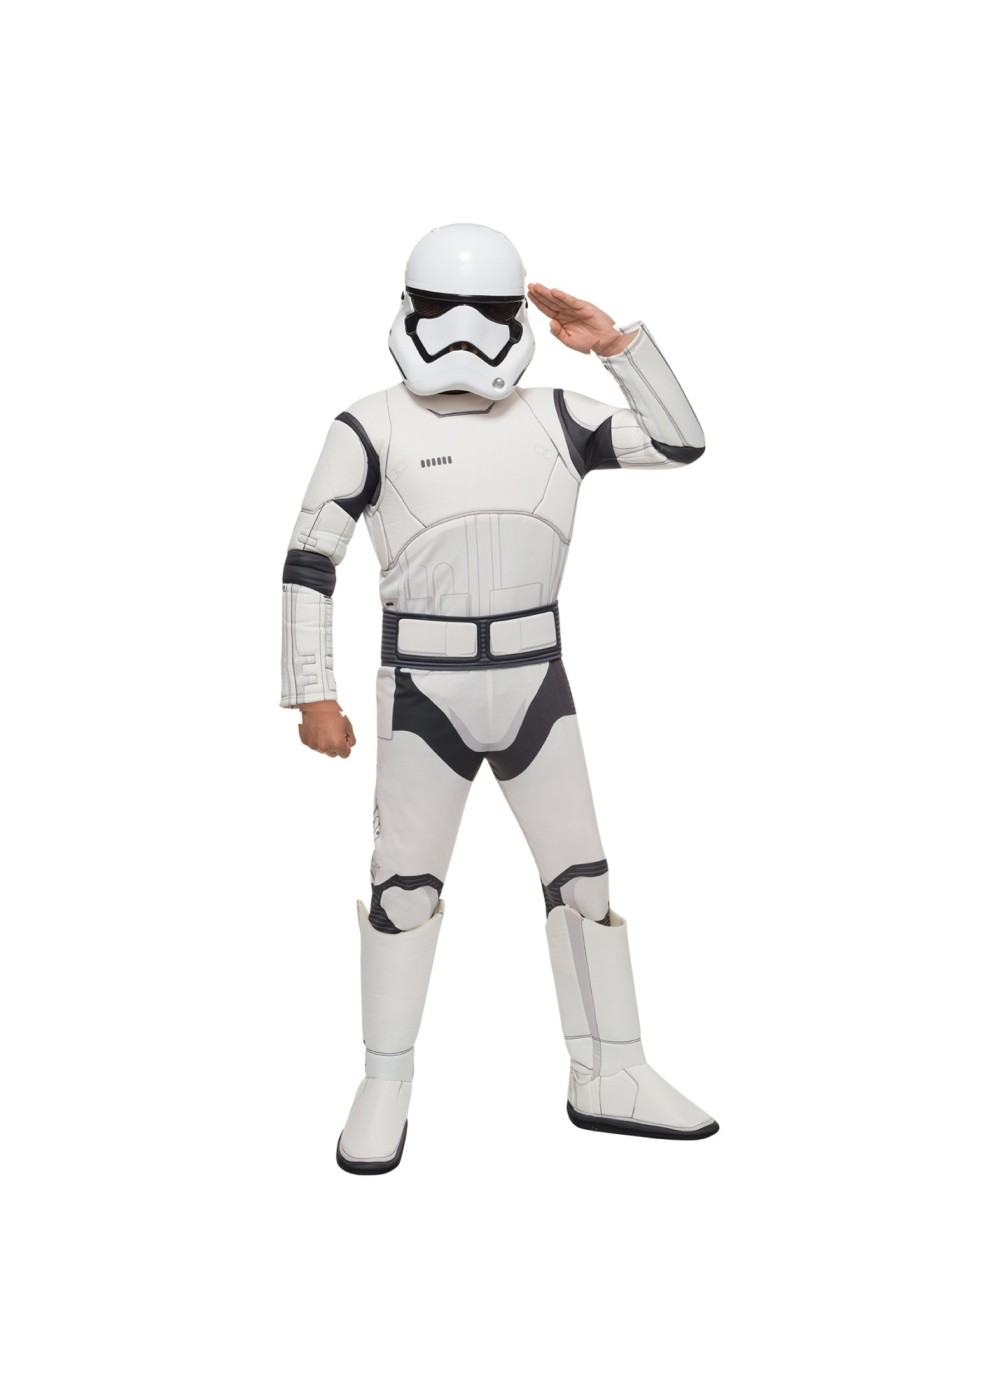 Star Wars Episode Vii Stormtrooper Boys Costume Deluxe